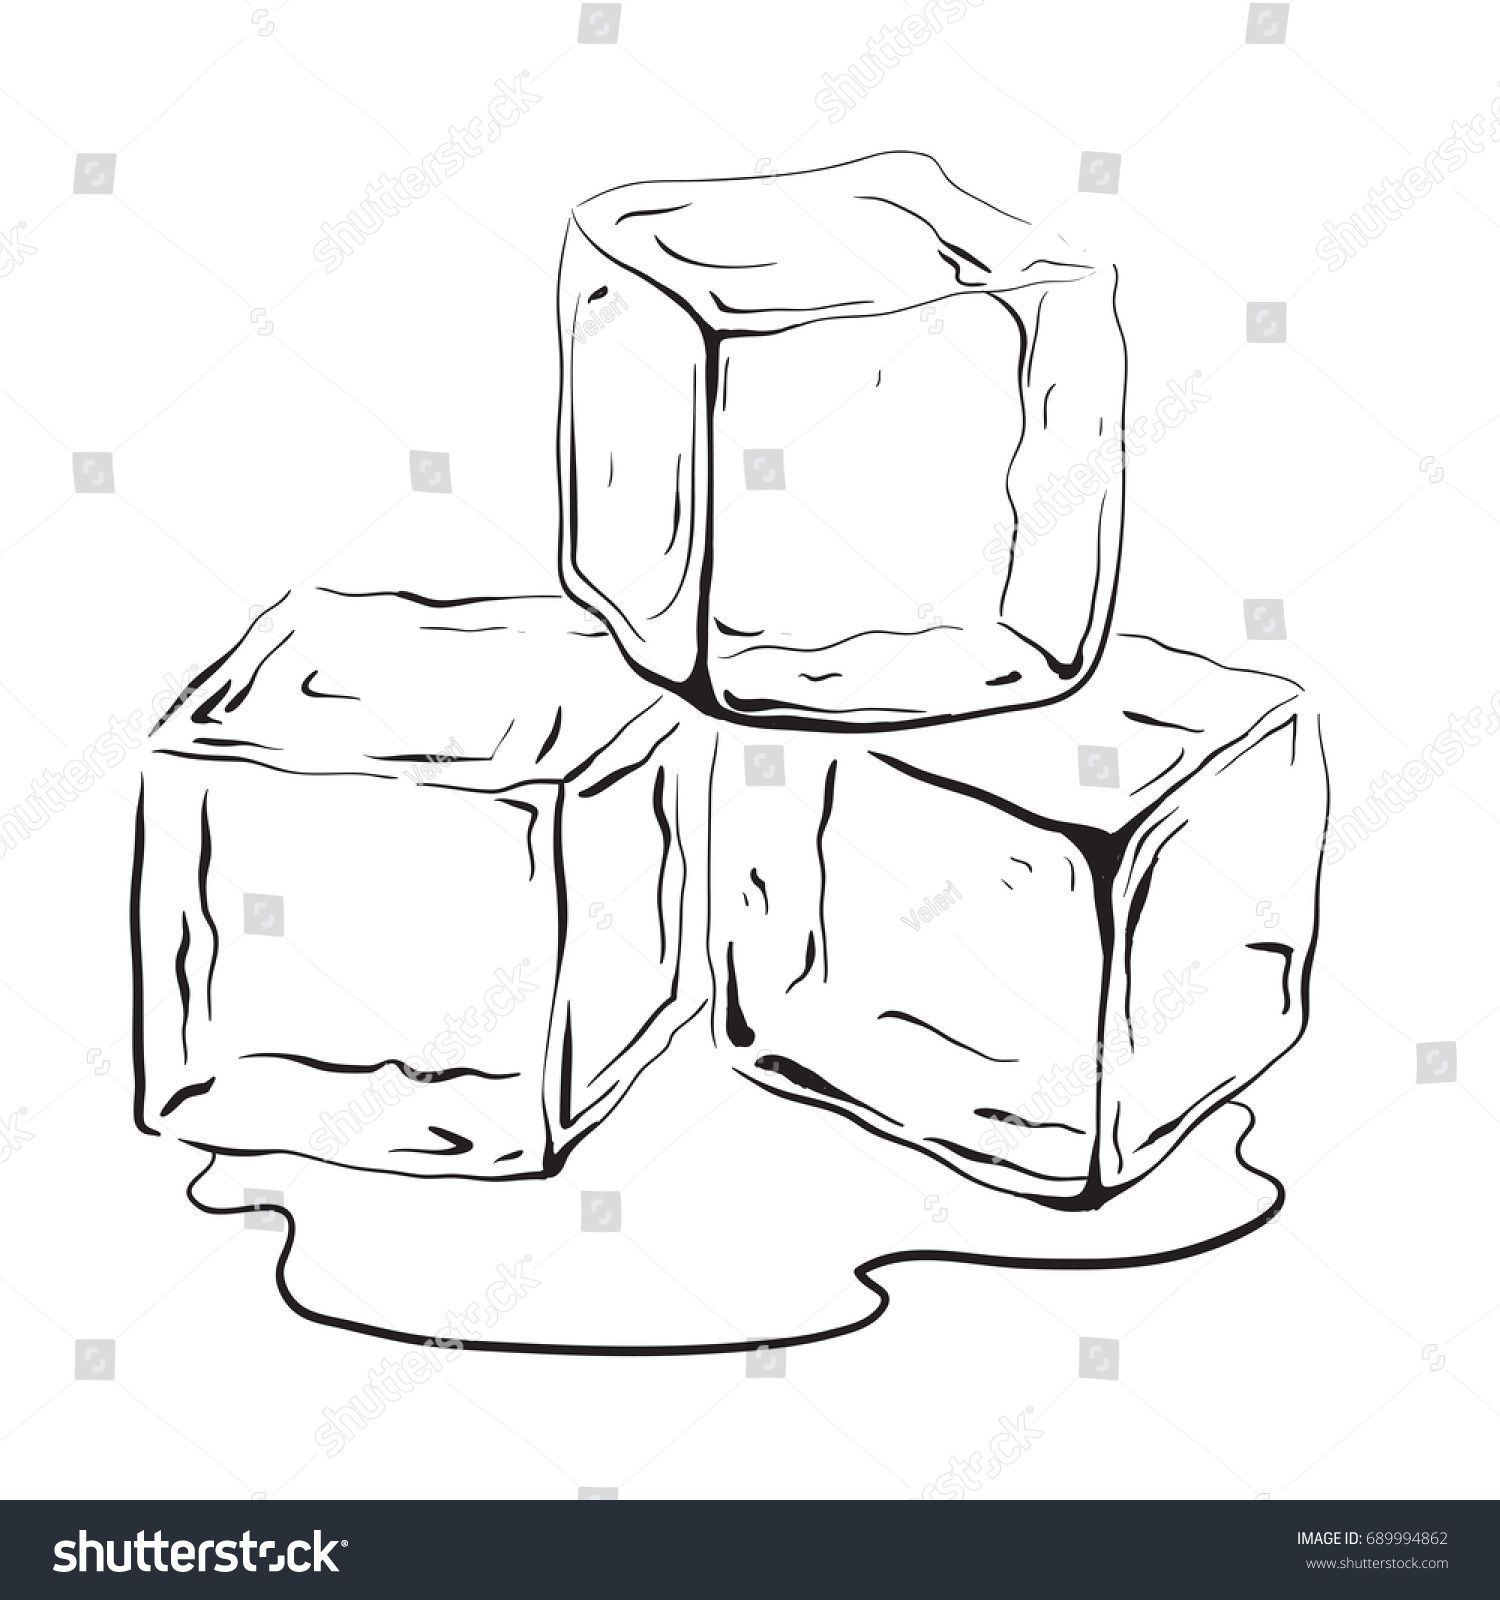 Hand Drawn Ice Cubes Black And White Vector Illustration For Your Creativity Sponsored Ad Ice Cubes Hand Drawn Ice Cube Drawing Ice Cube Ice Drawing